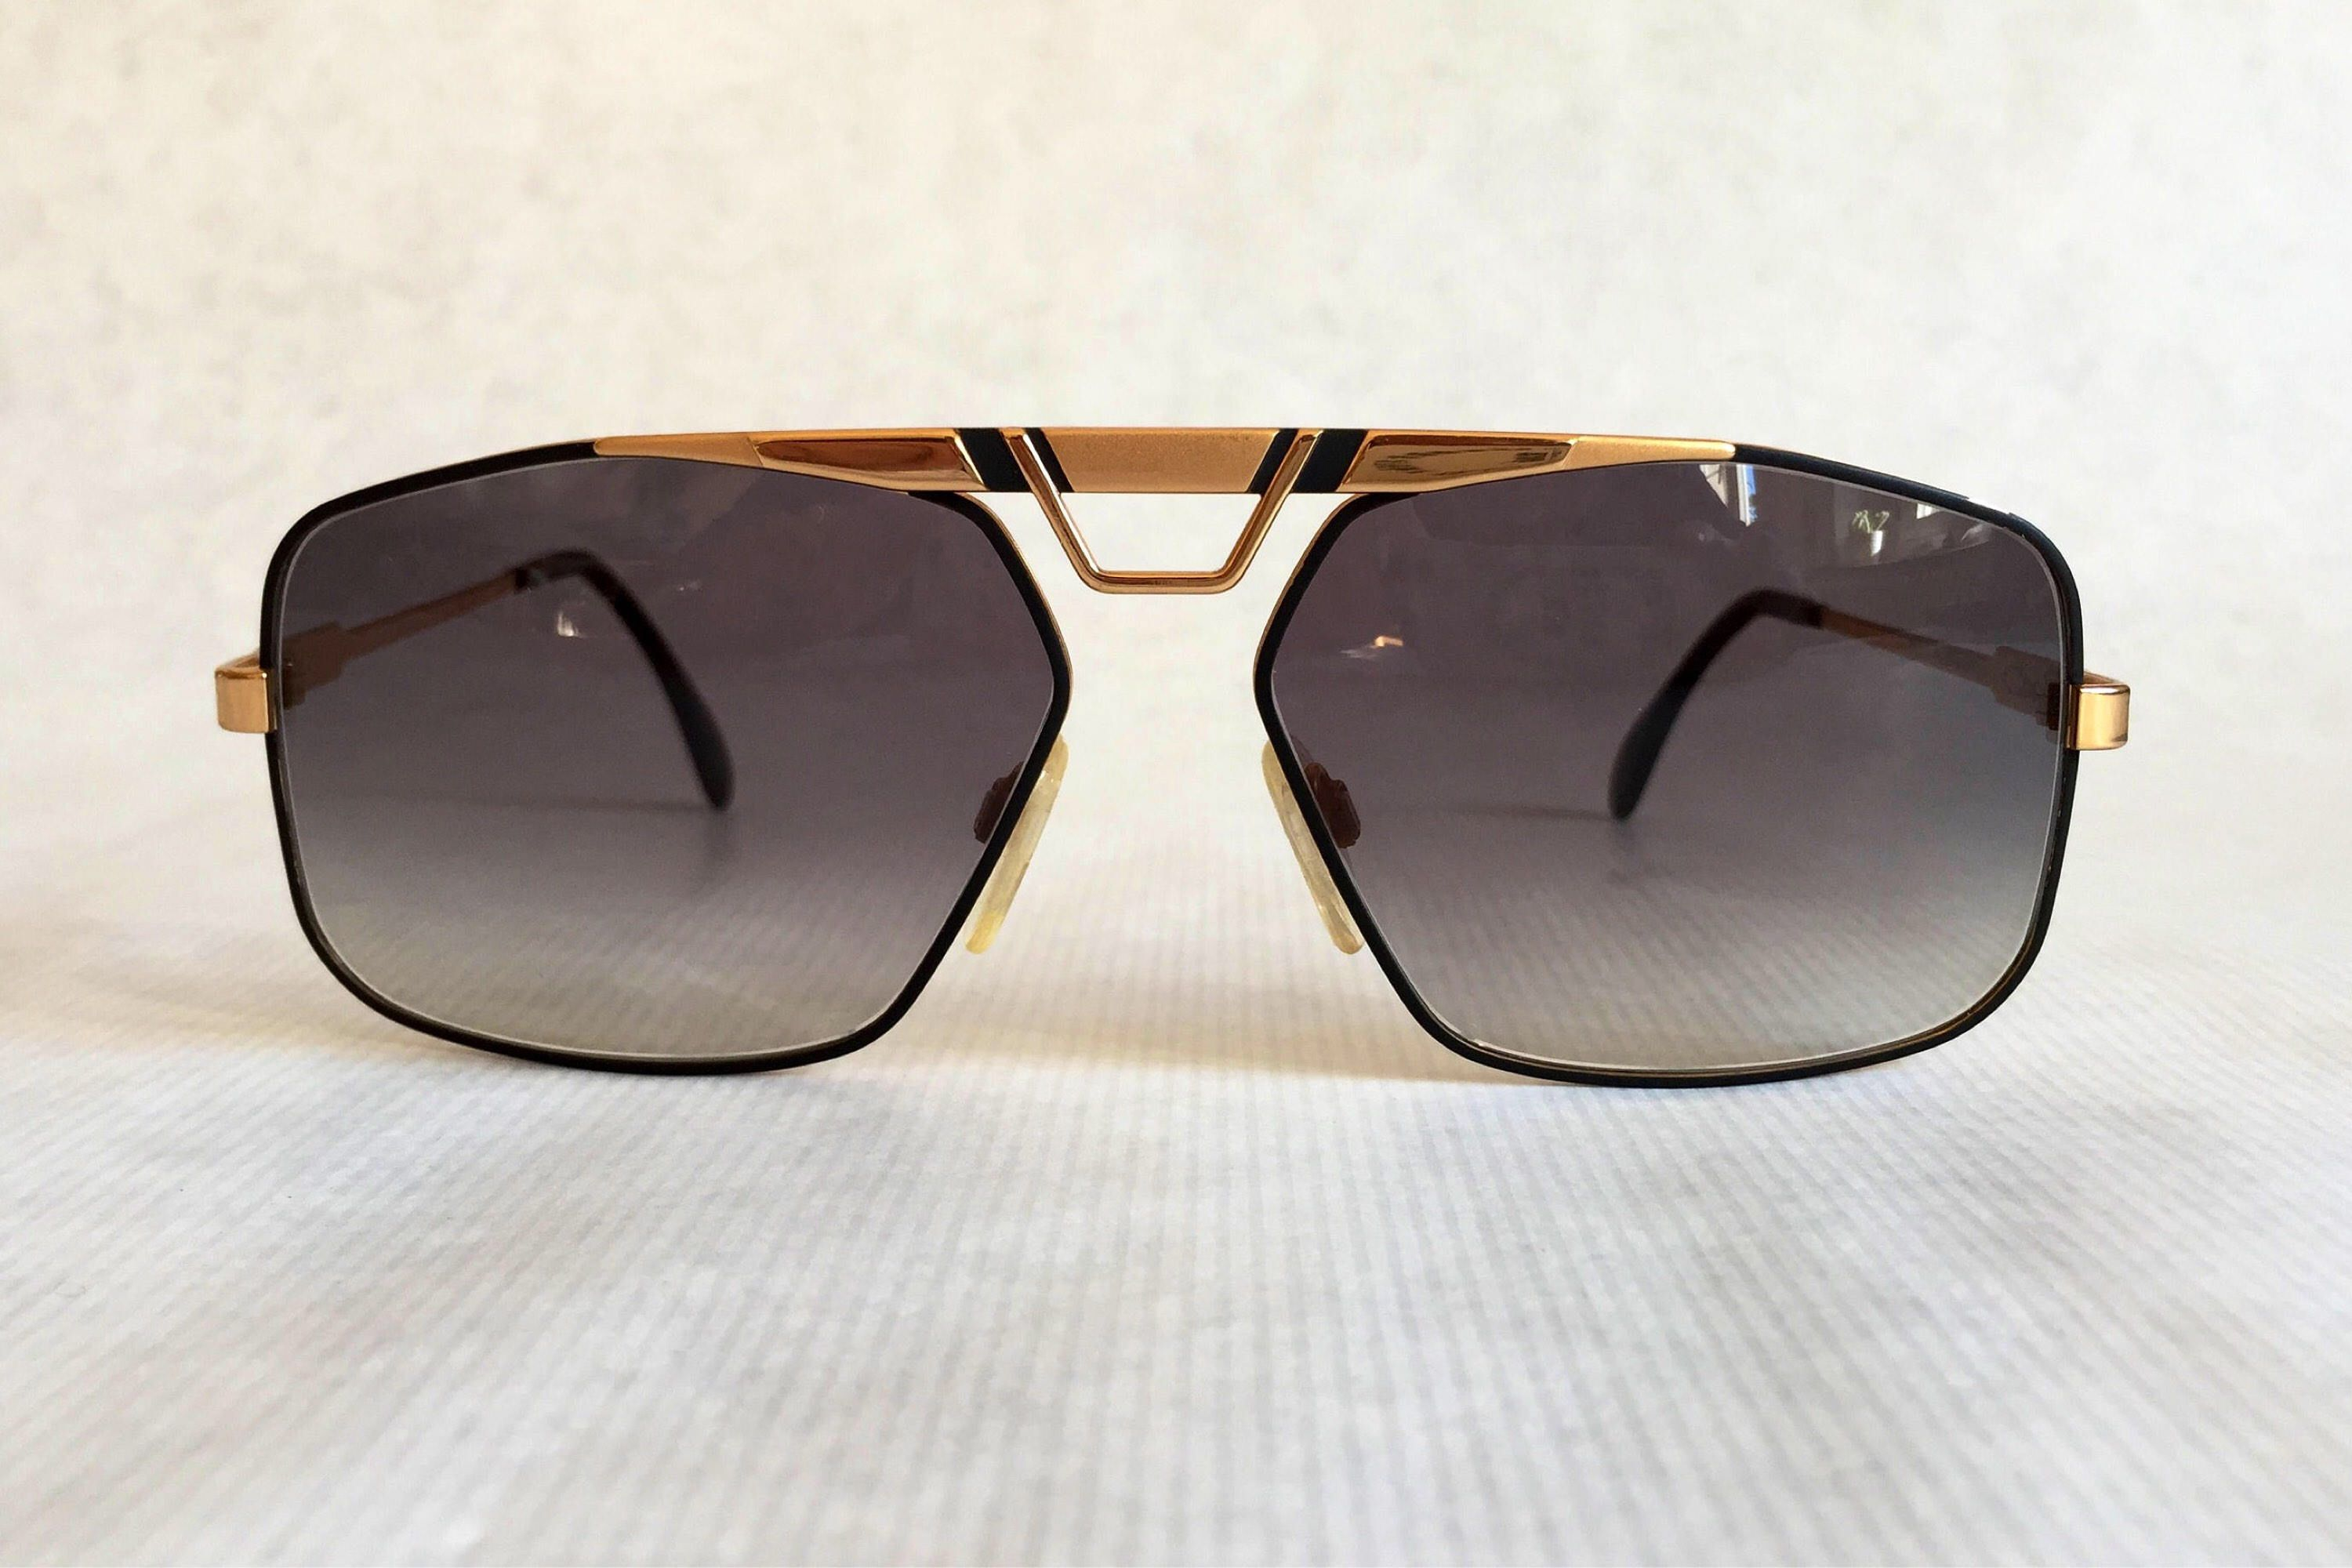 Cazal 735 Col 302 Vintage Sunglasses New Old Stock Made In West